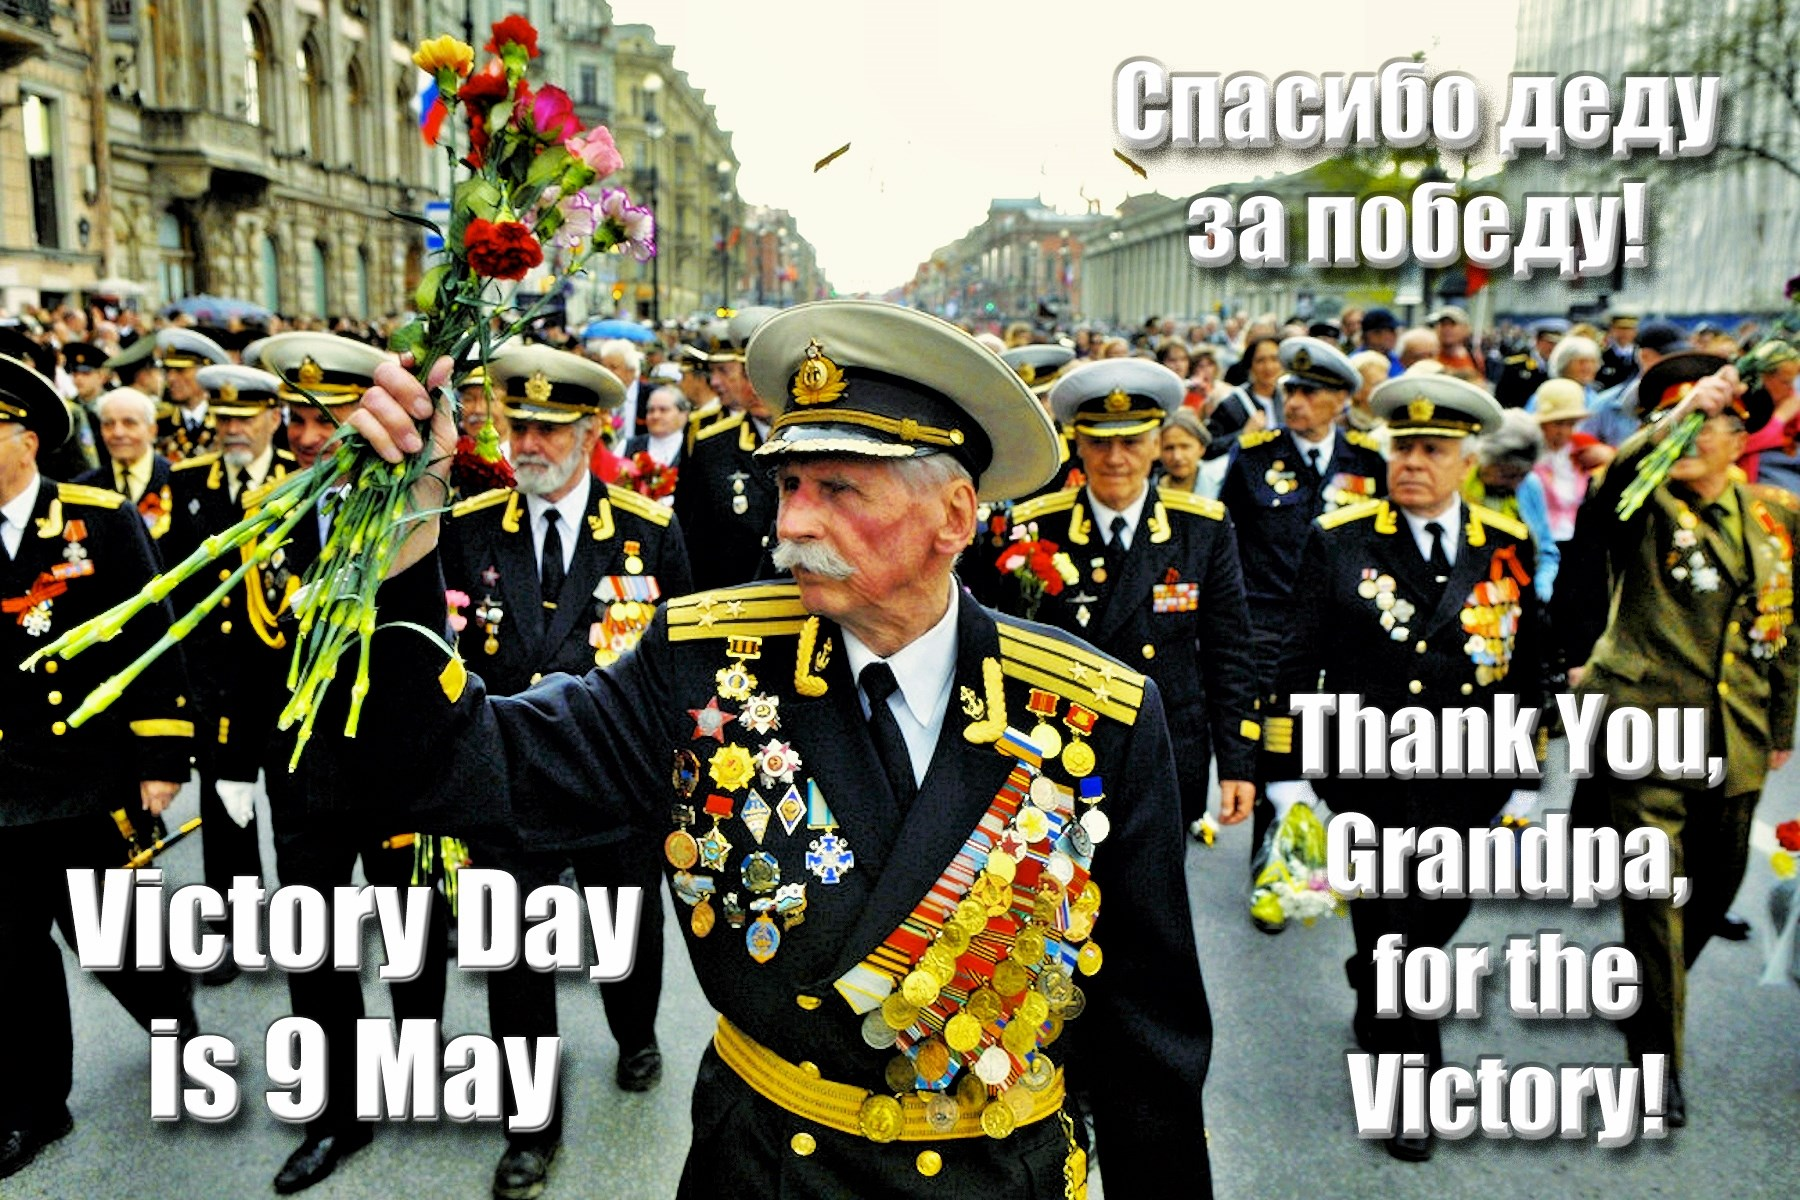 00 thank you grandpa for the victory russia 140416